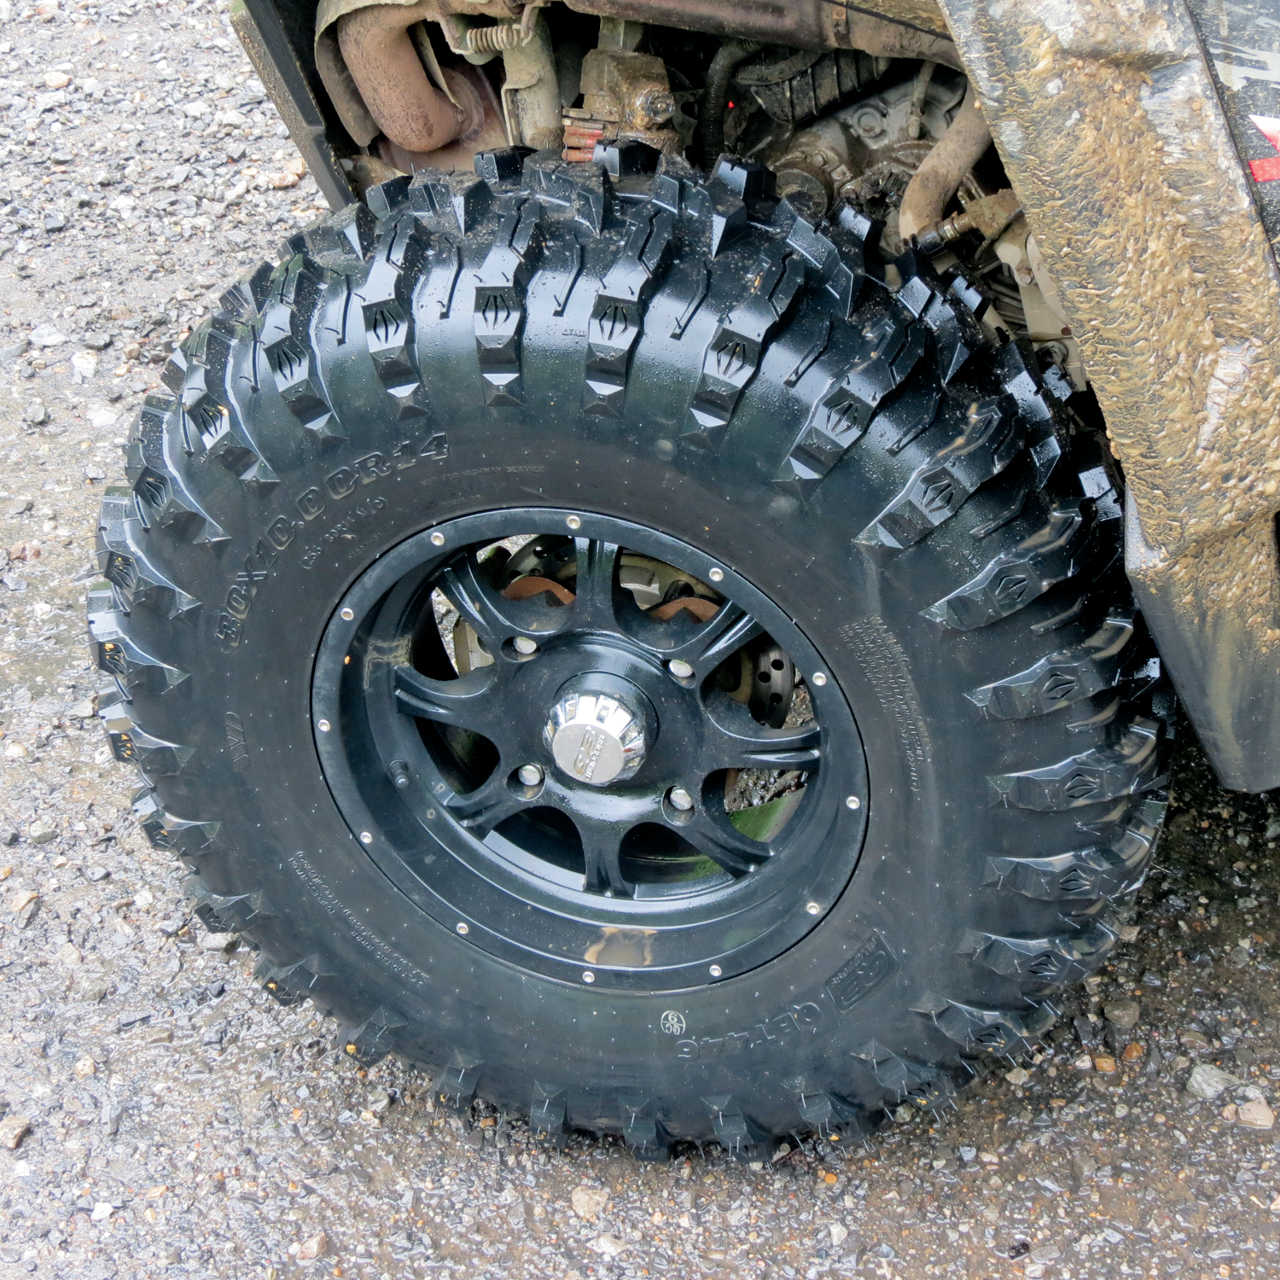 ... vendor.quadboss.446-c-radial-tire.scoville-boss-